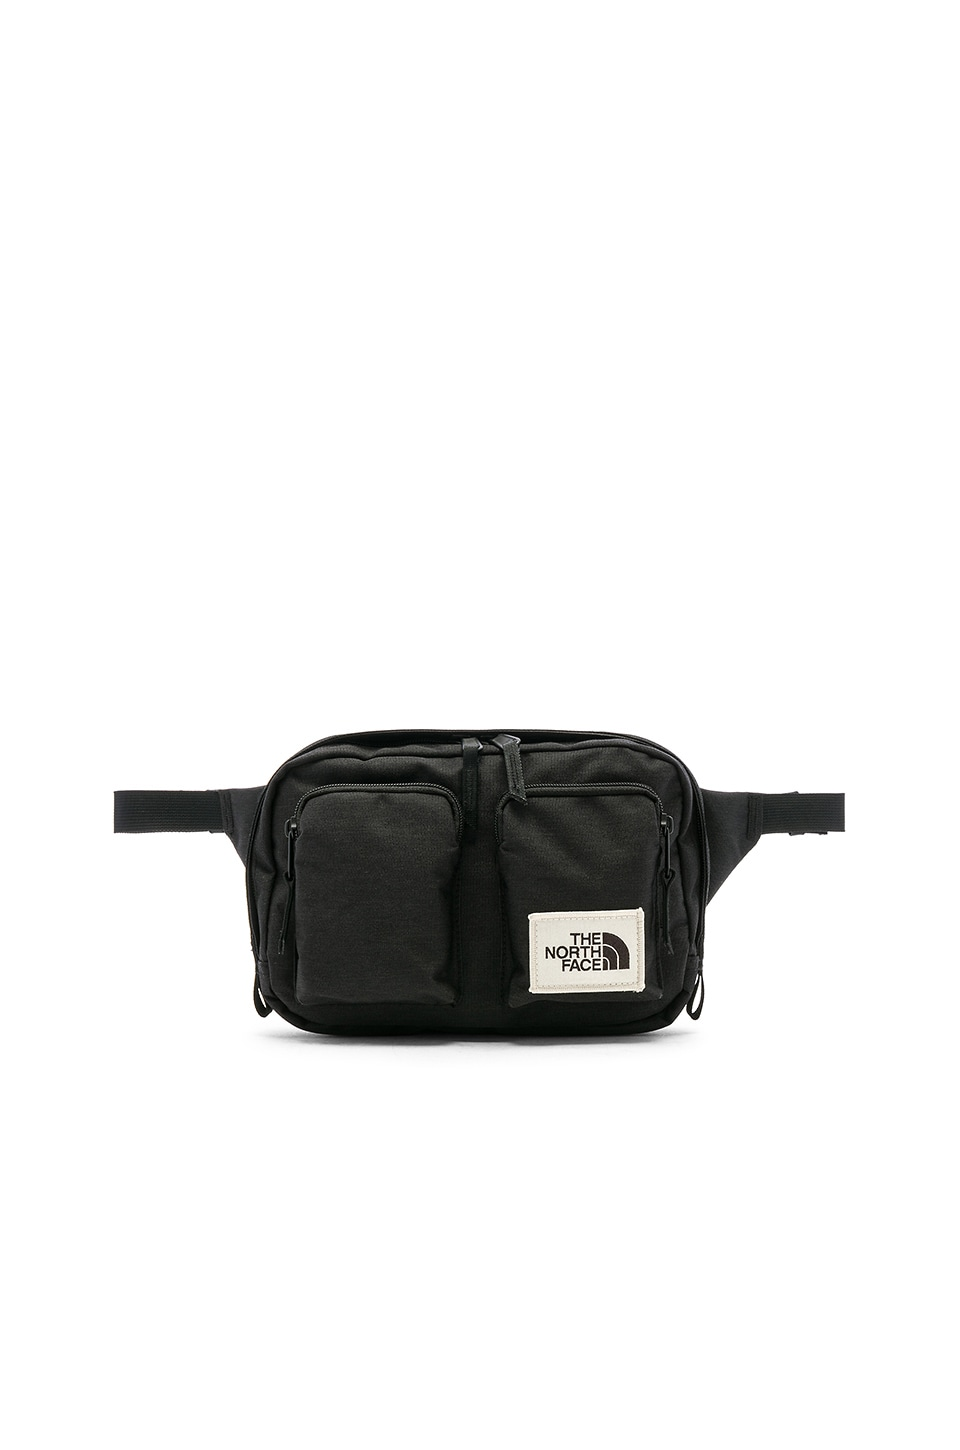 ff272246a The North Face Kanga Bag in TNF Black Heather | REVOLVE